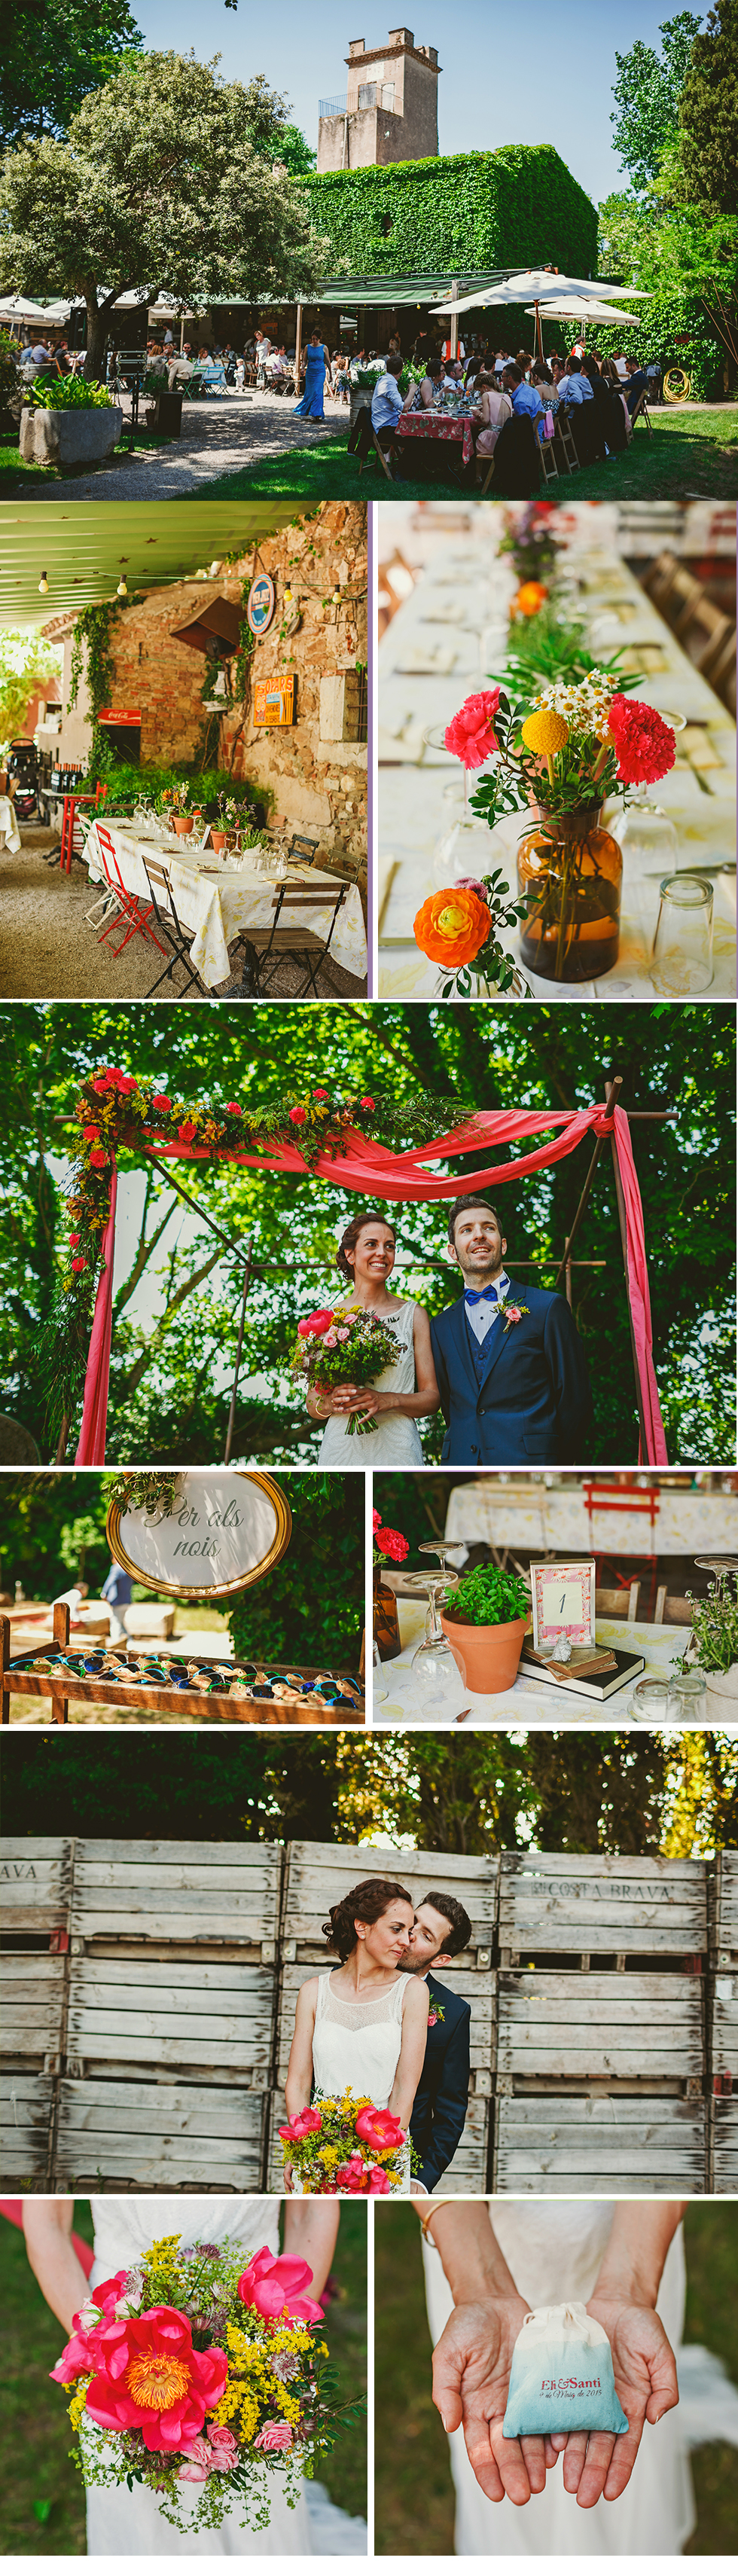 Boda emporda wedding planner